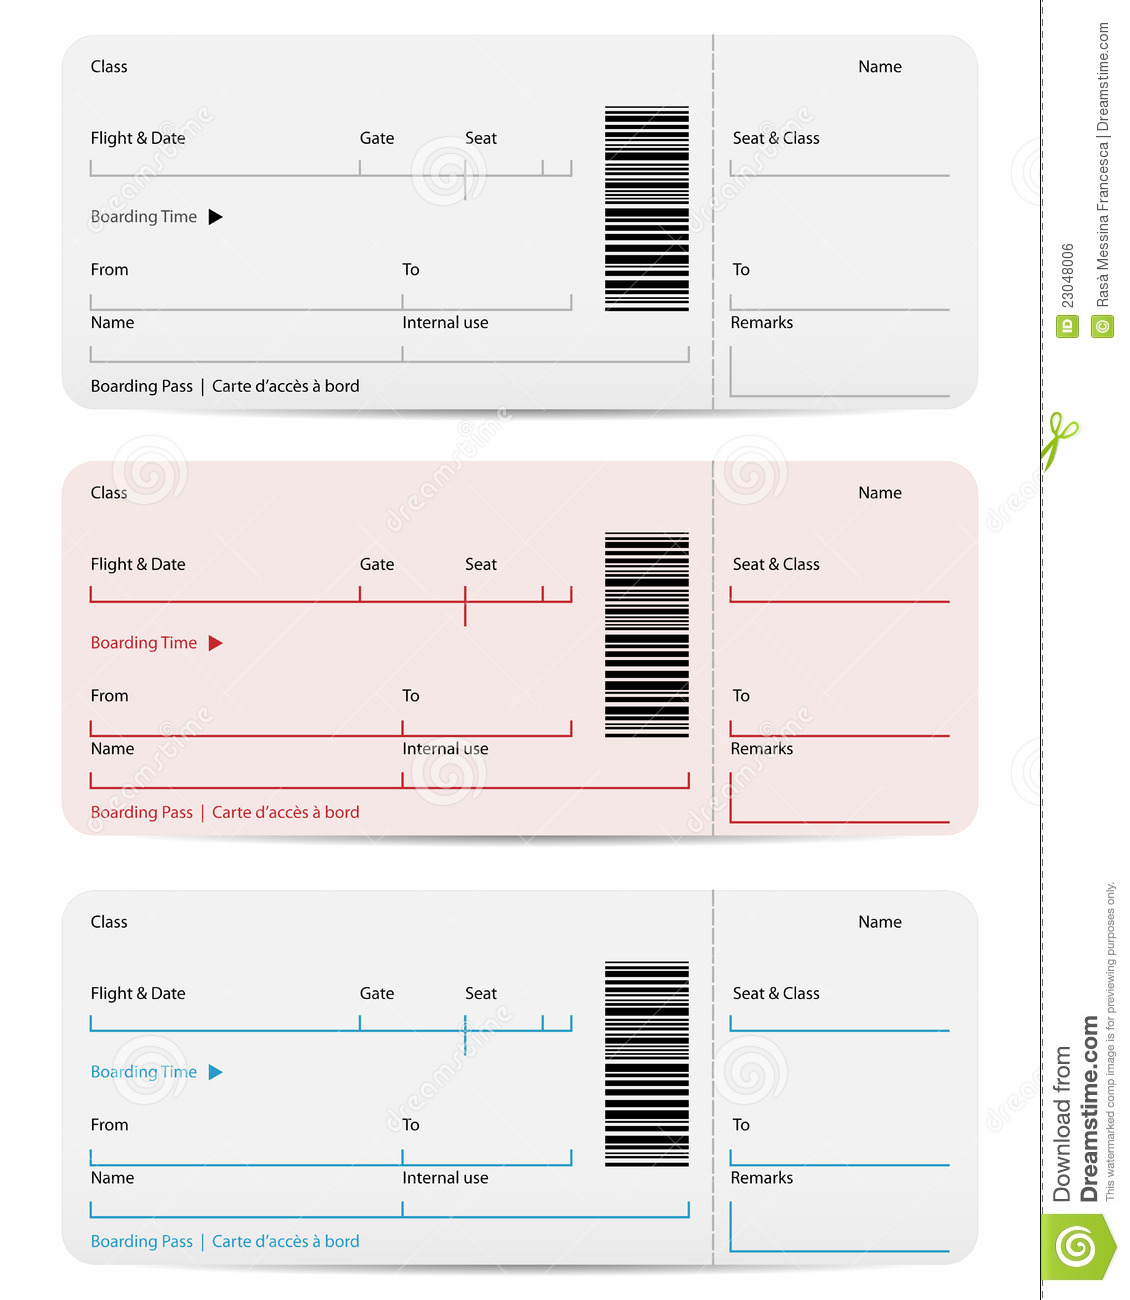 plane ticket template word - Military.bralicious.co